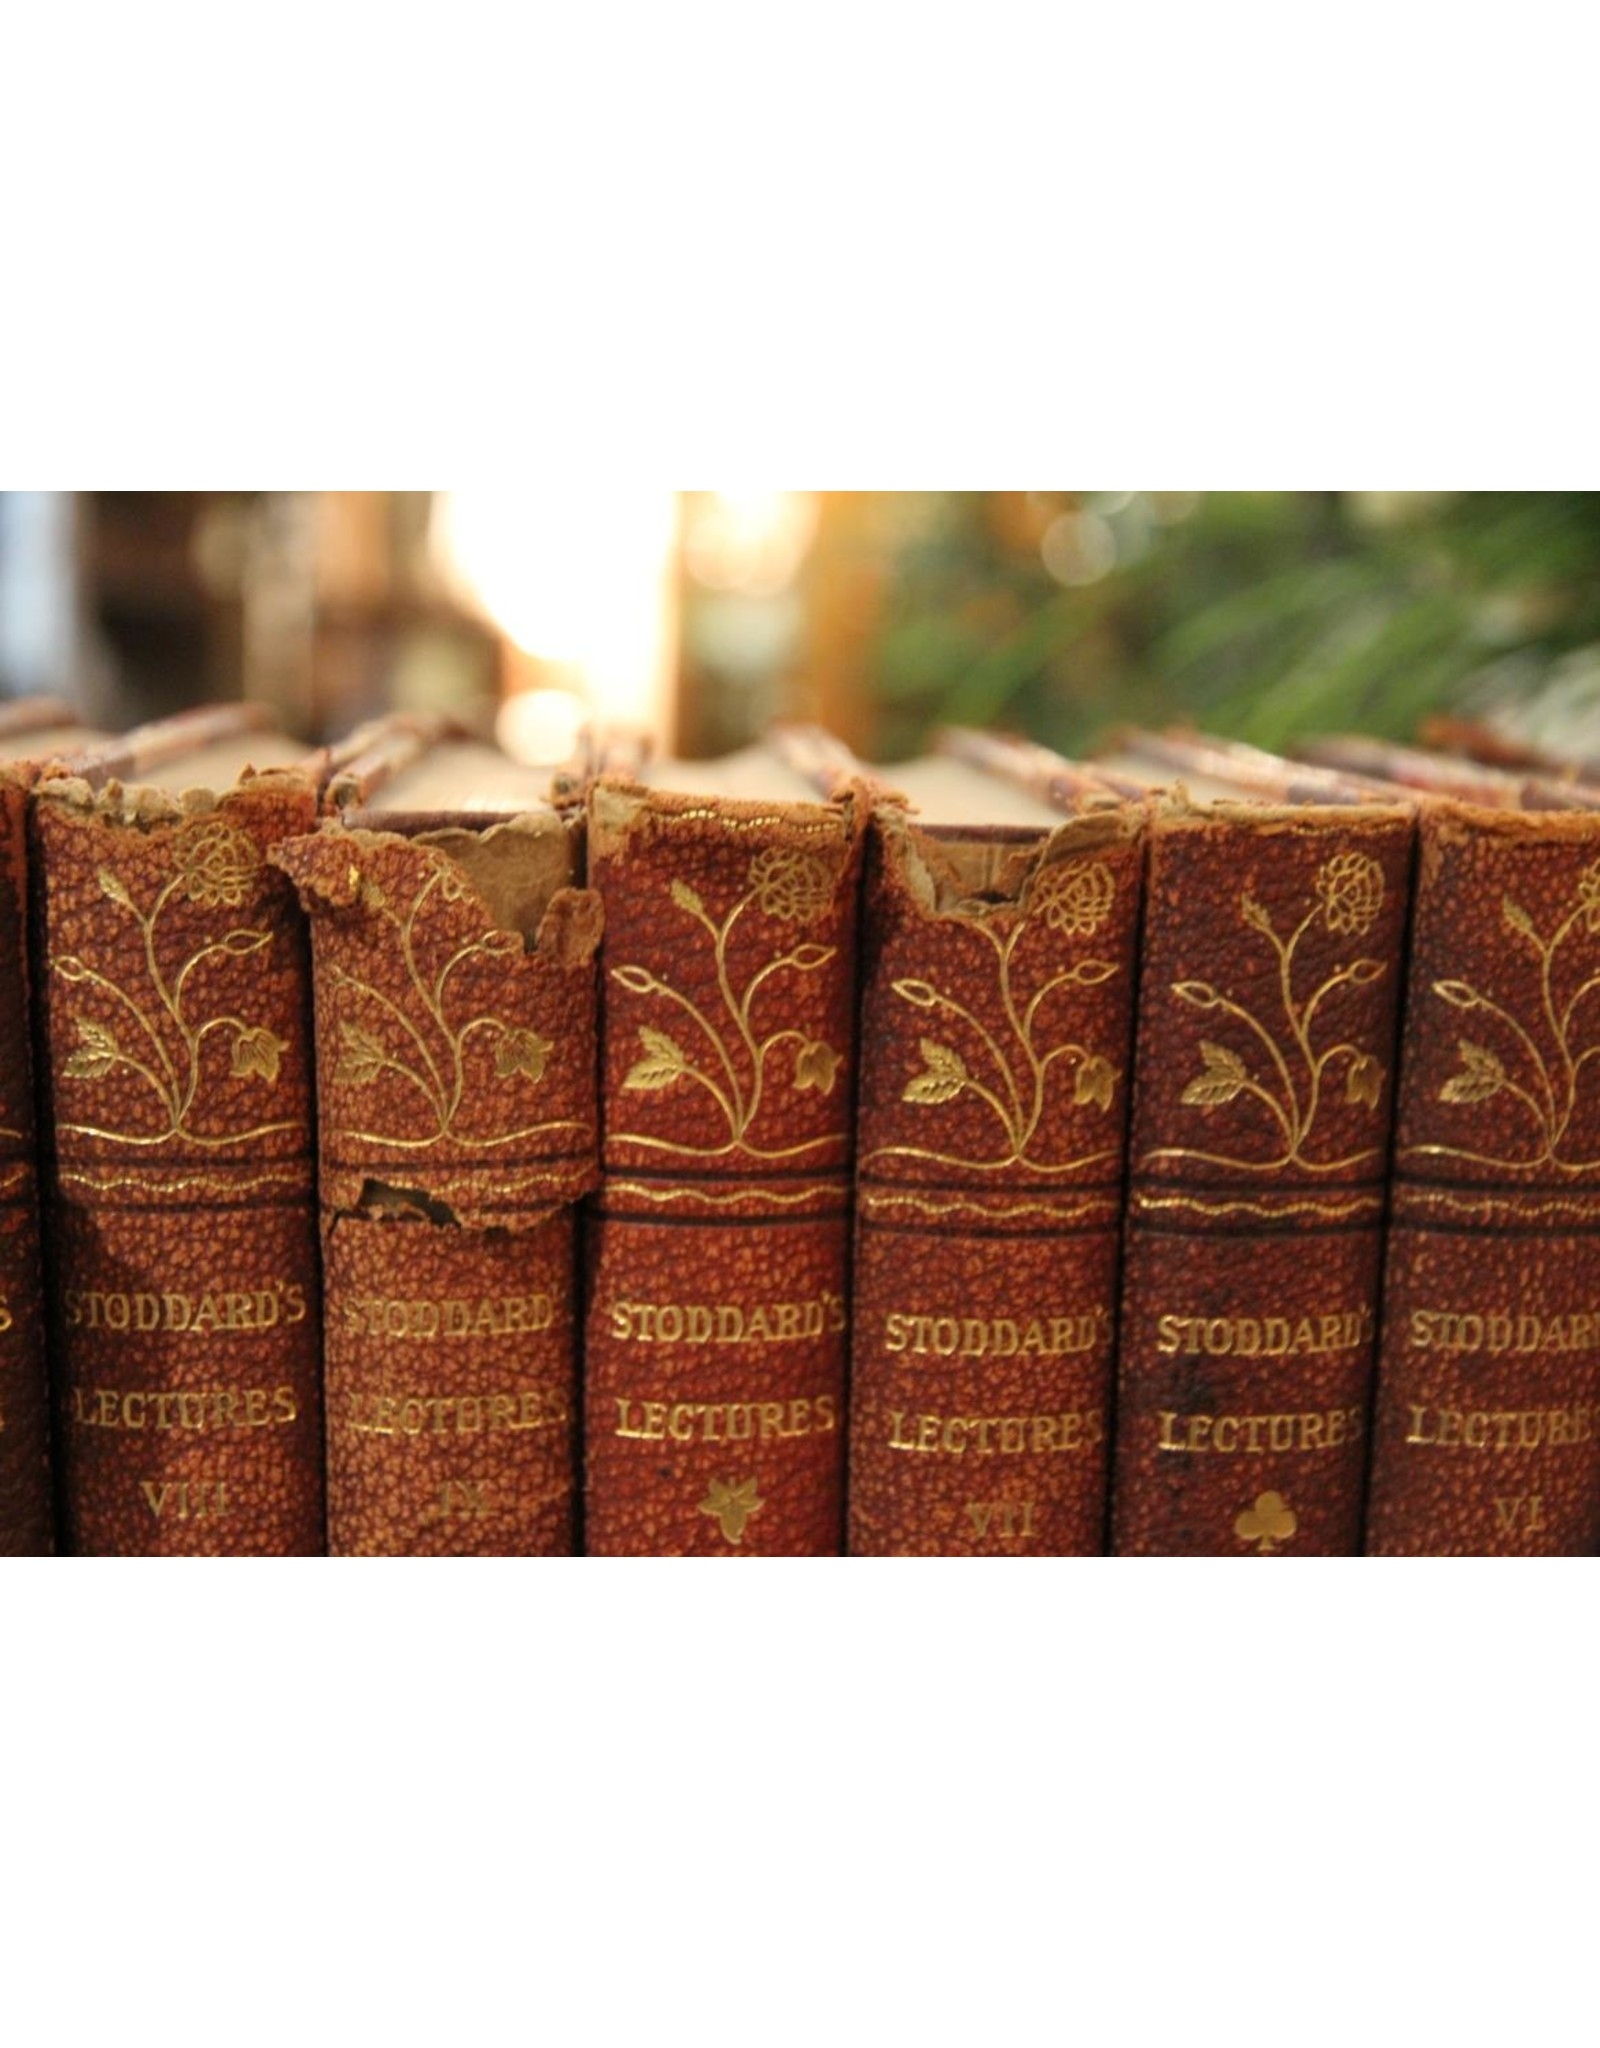 Books - set of 14 volumes of Stoddard's Lectures, 1914. leather-bound, marbled